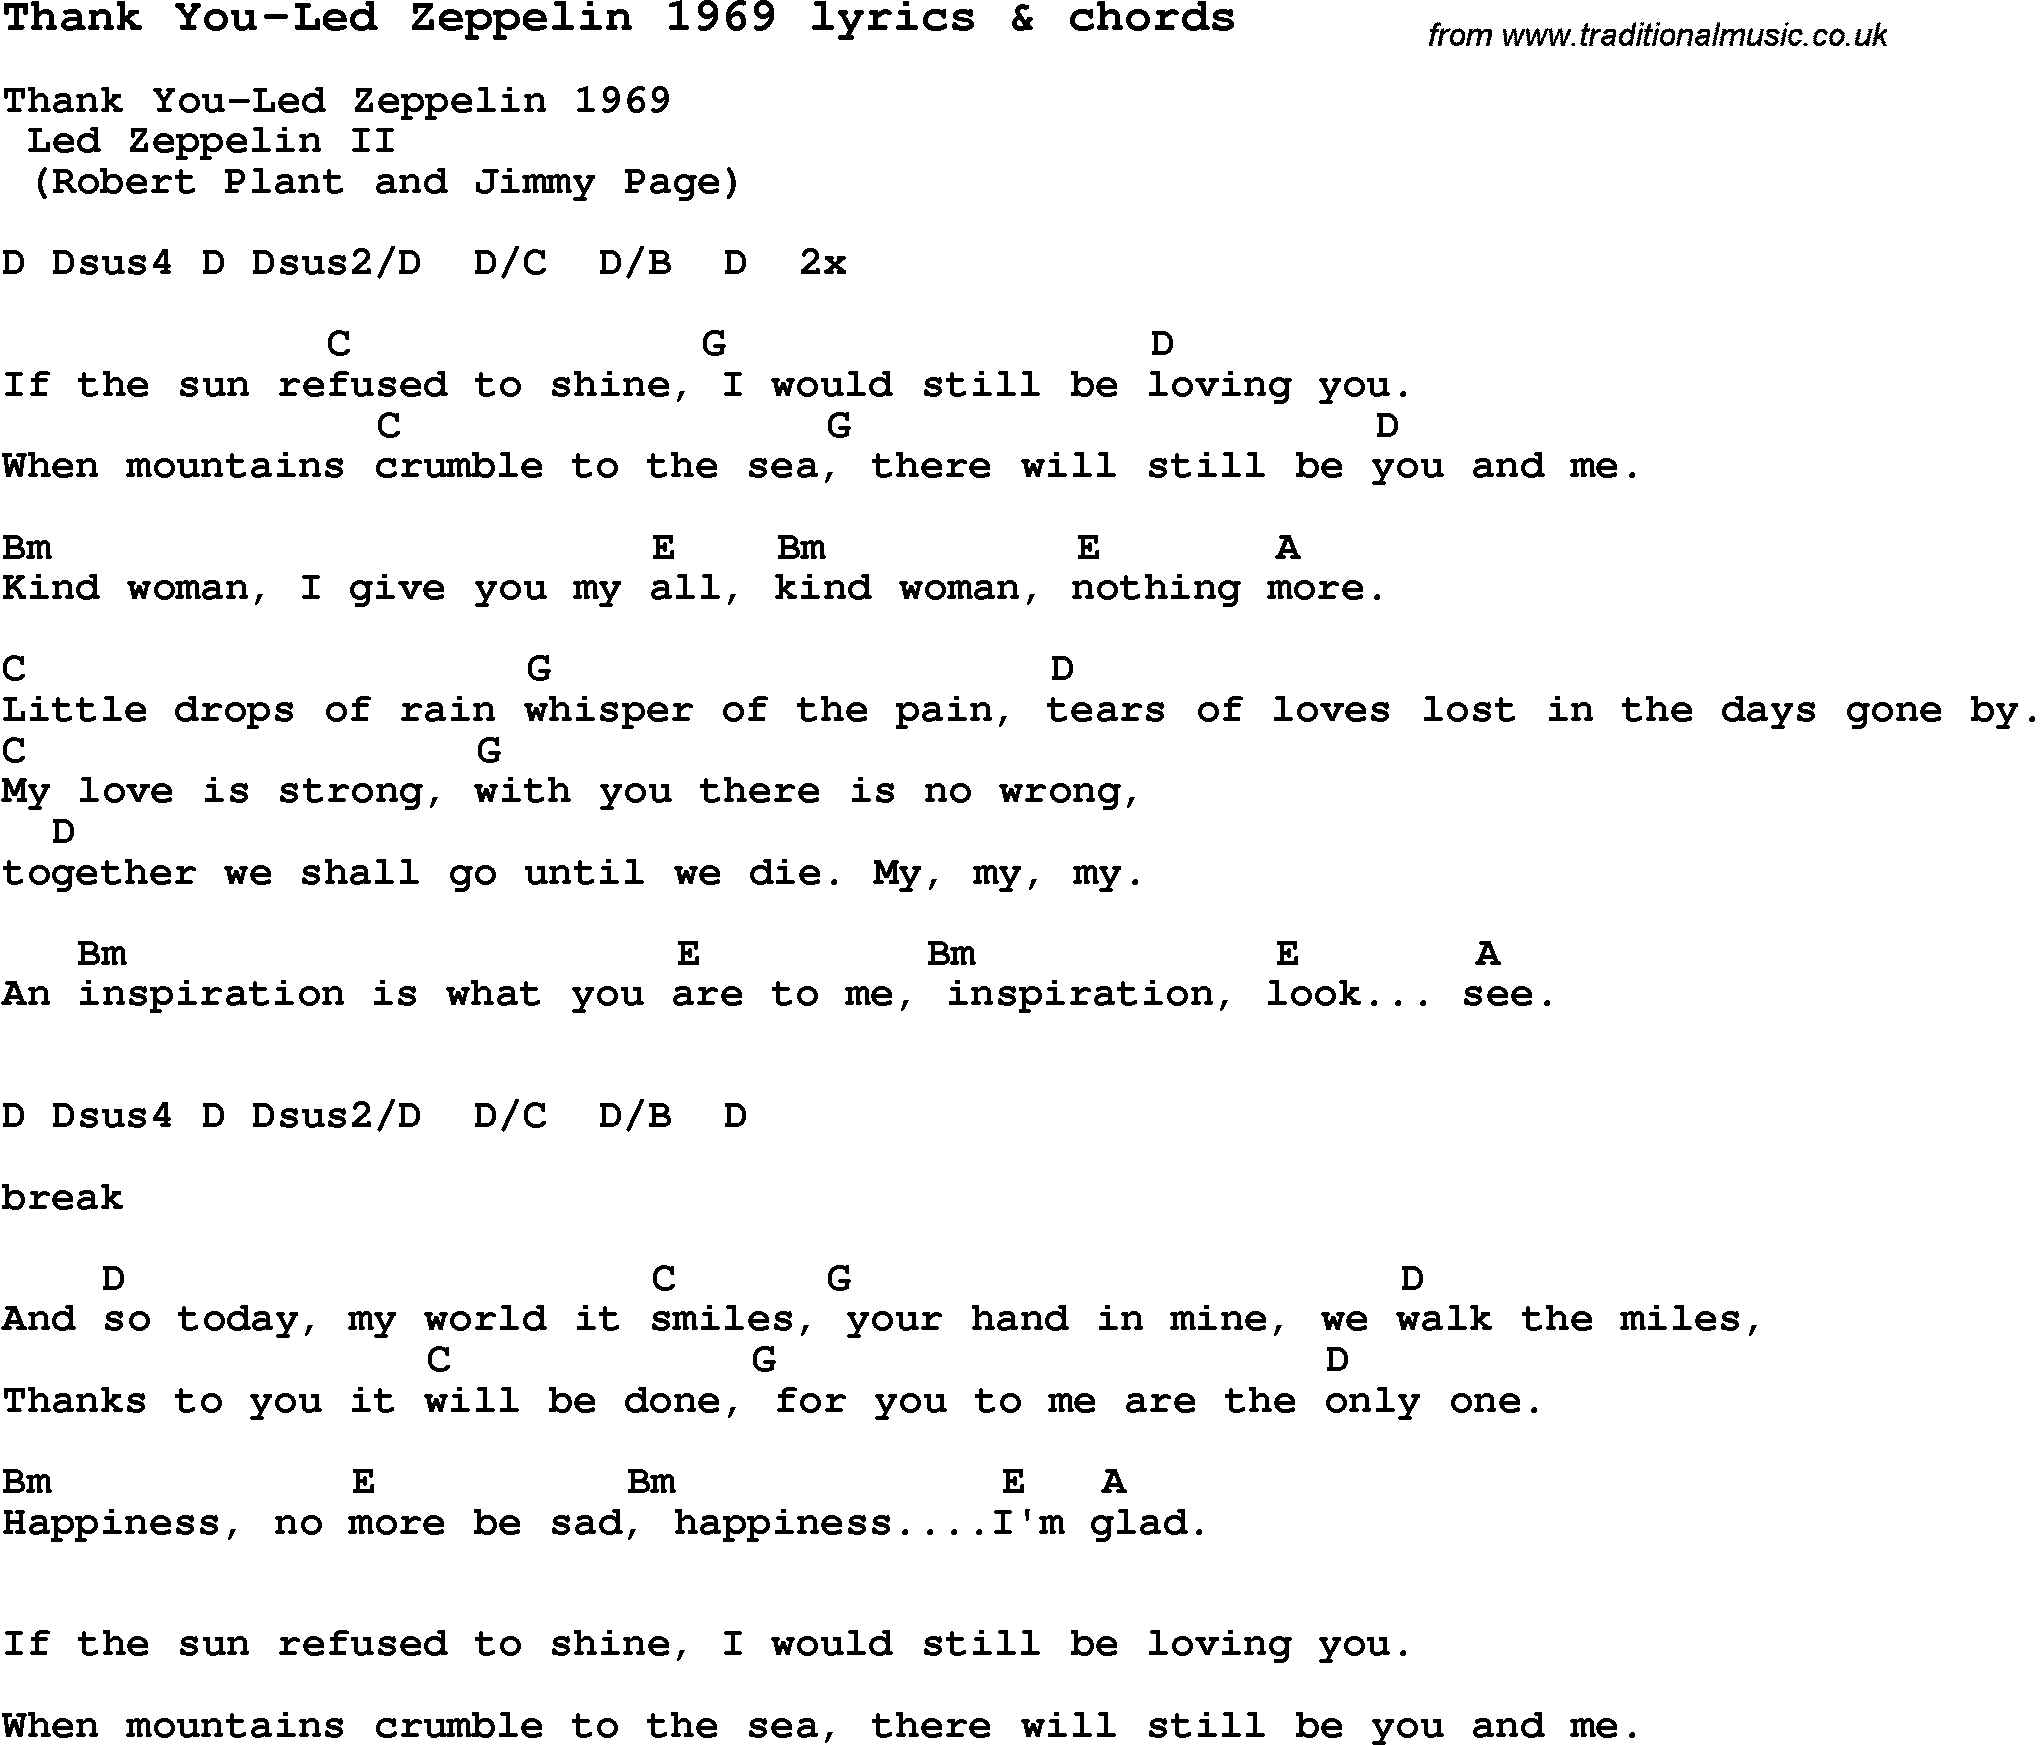 Love Song Lyrics For Thank You Led Zeppelin 1969 With Chords